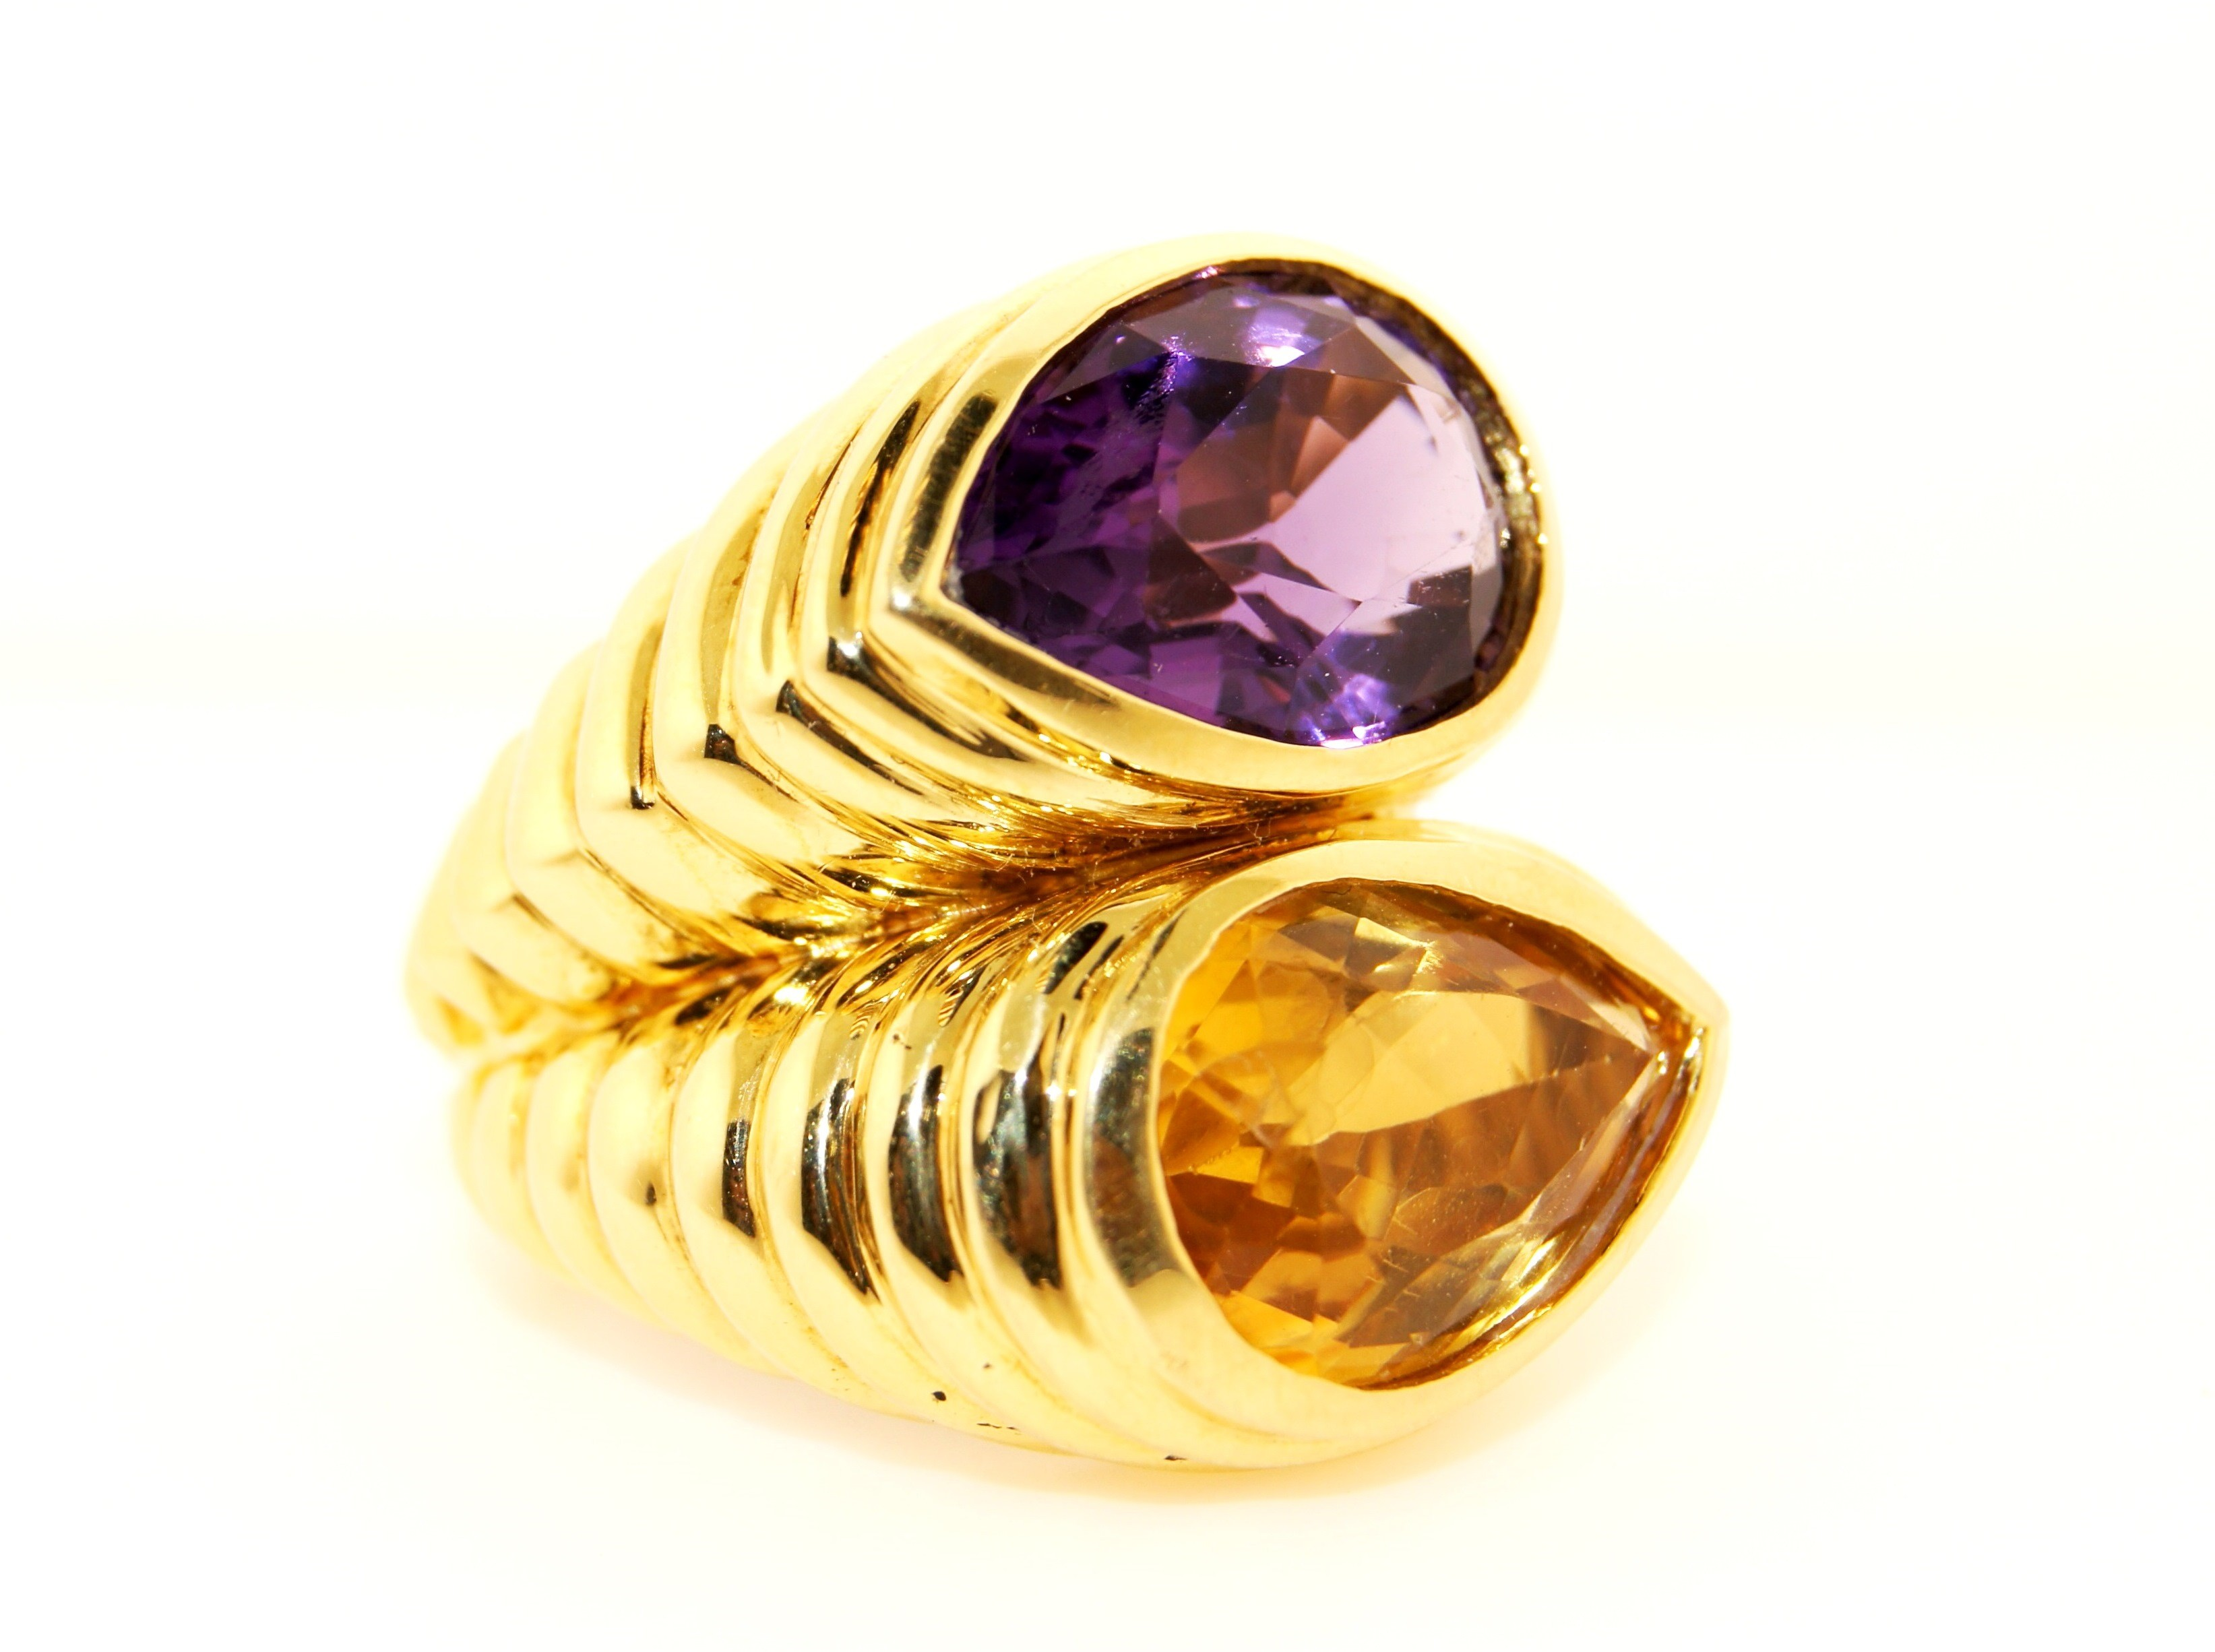 18K Yellow Gold with Topaz and Amethyst Ring